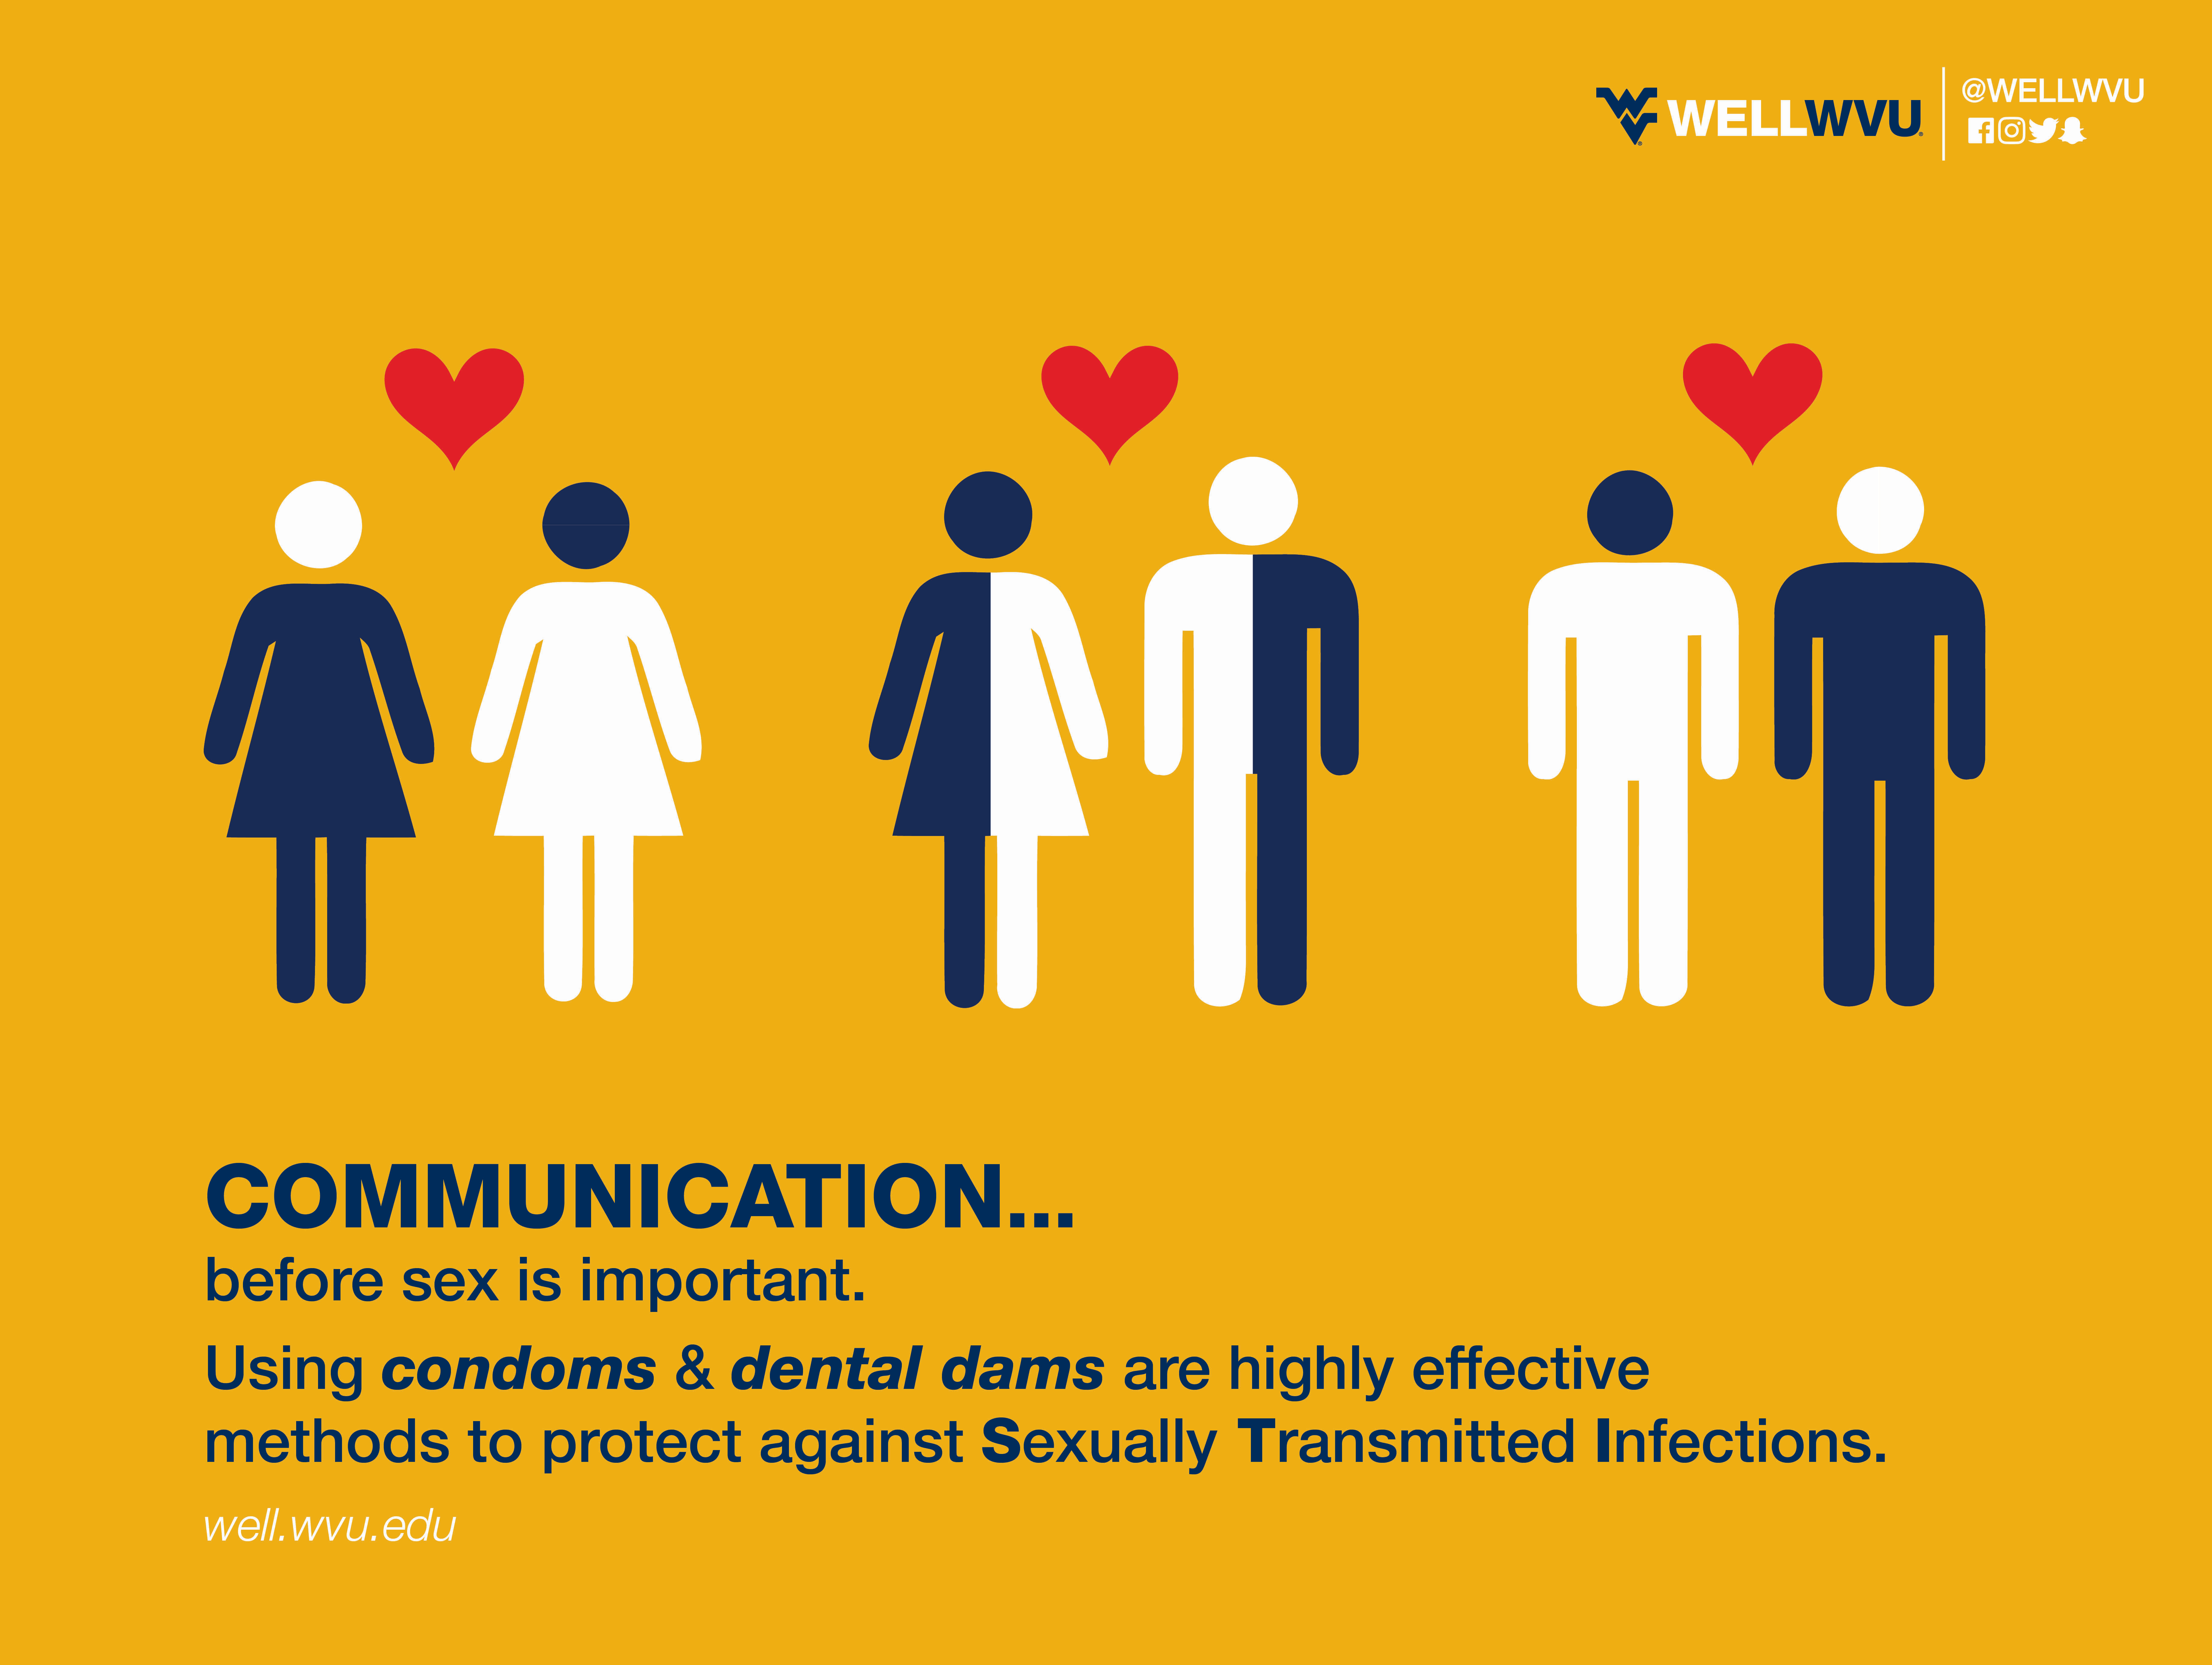 WELLWVU Sexual Health Poster